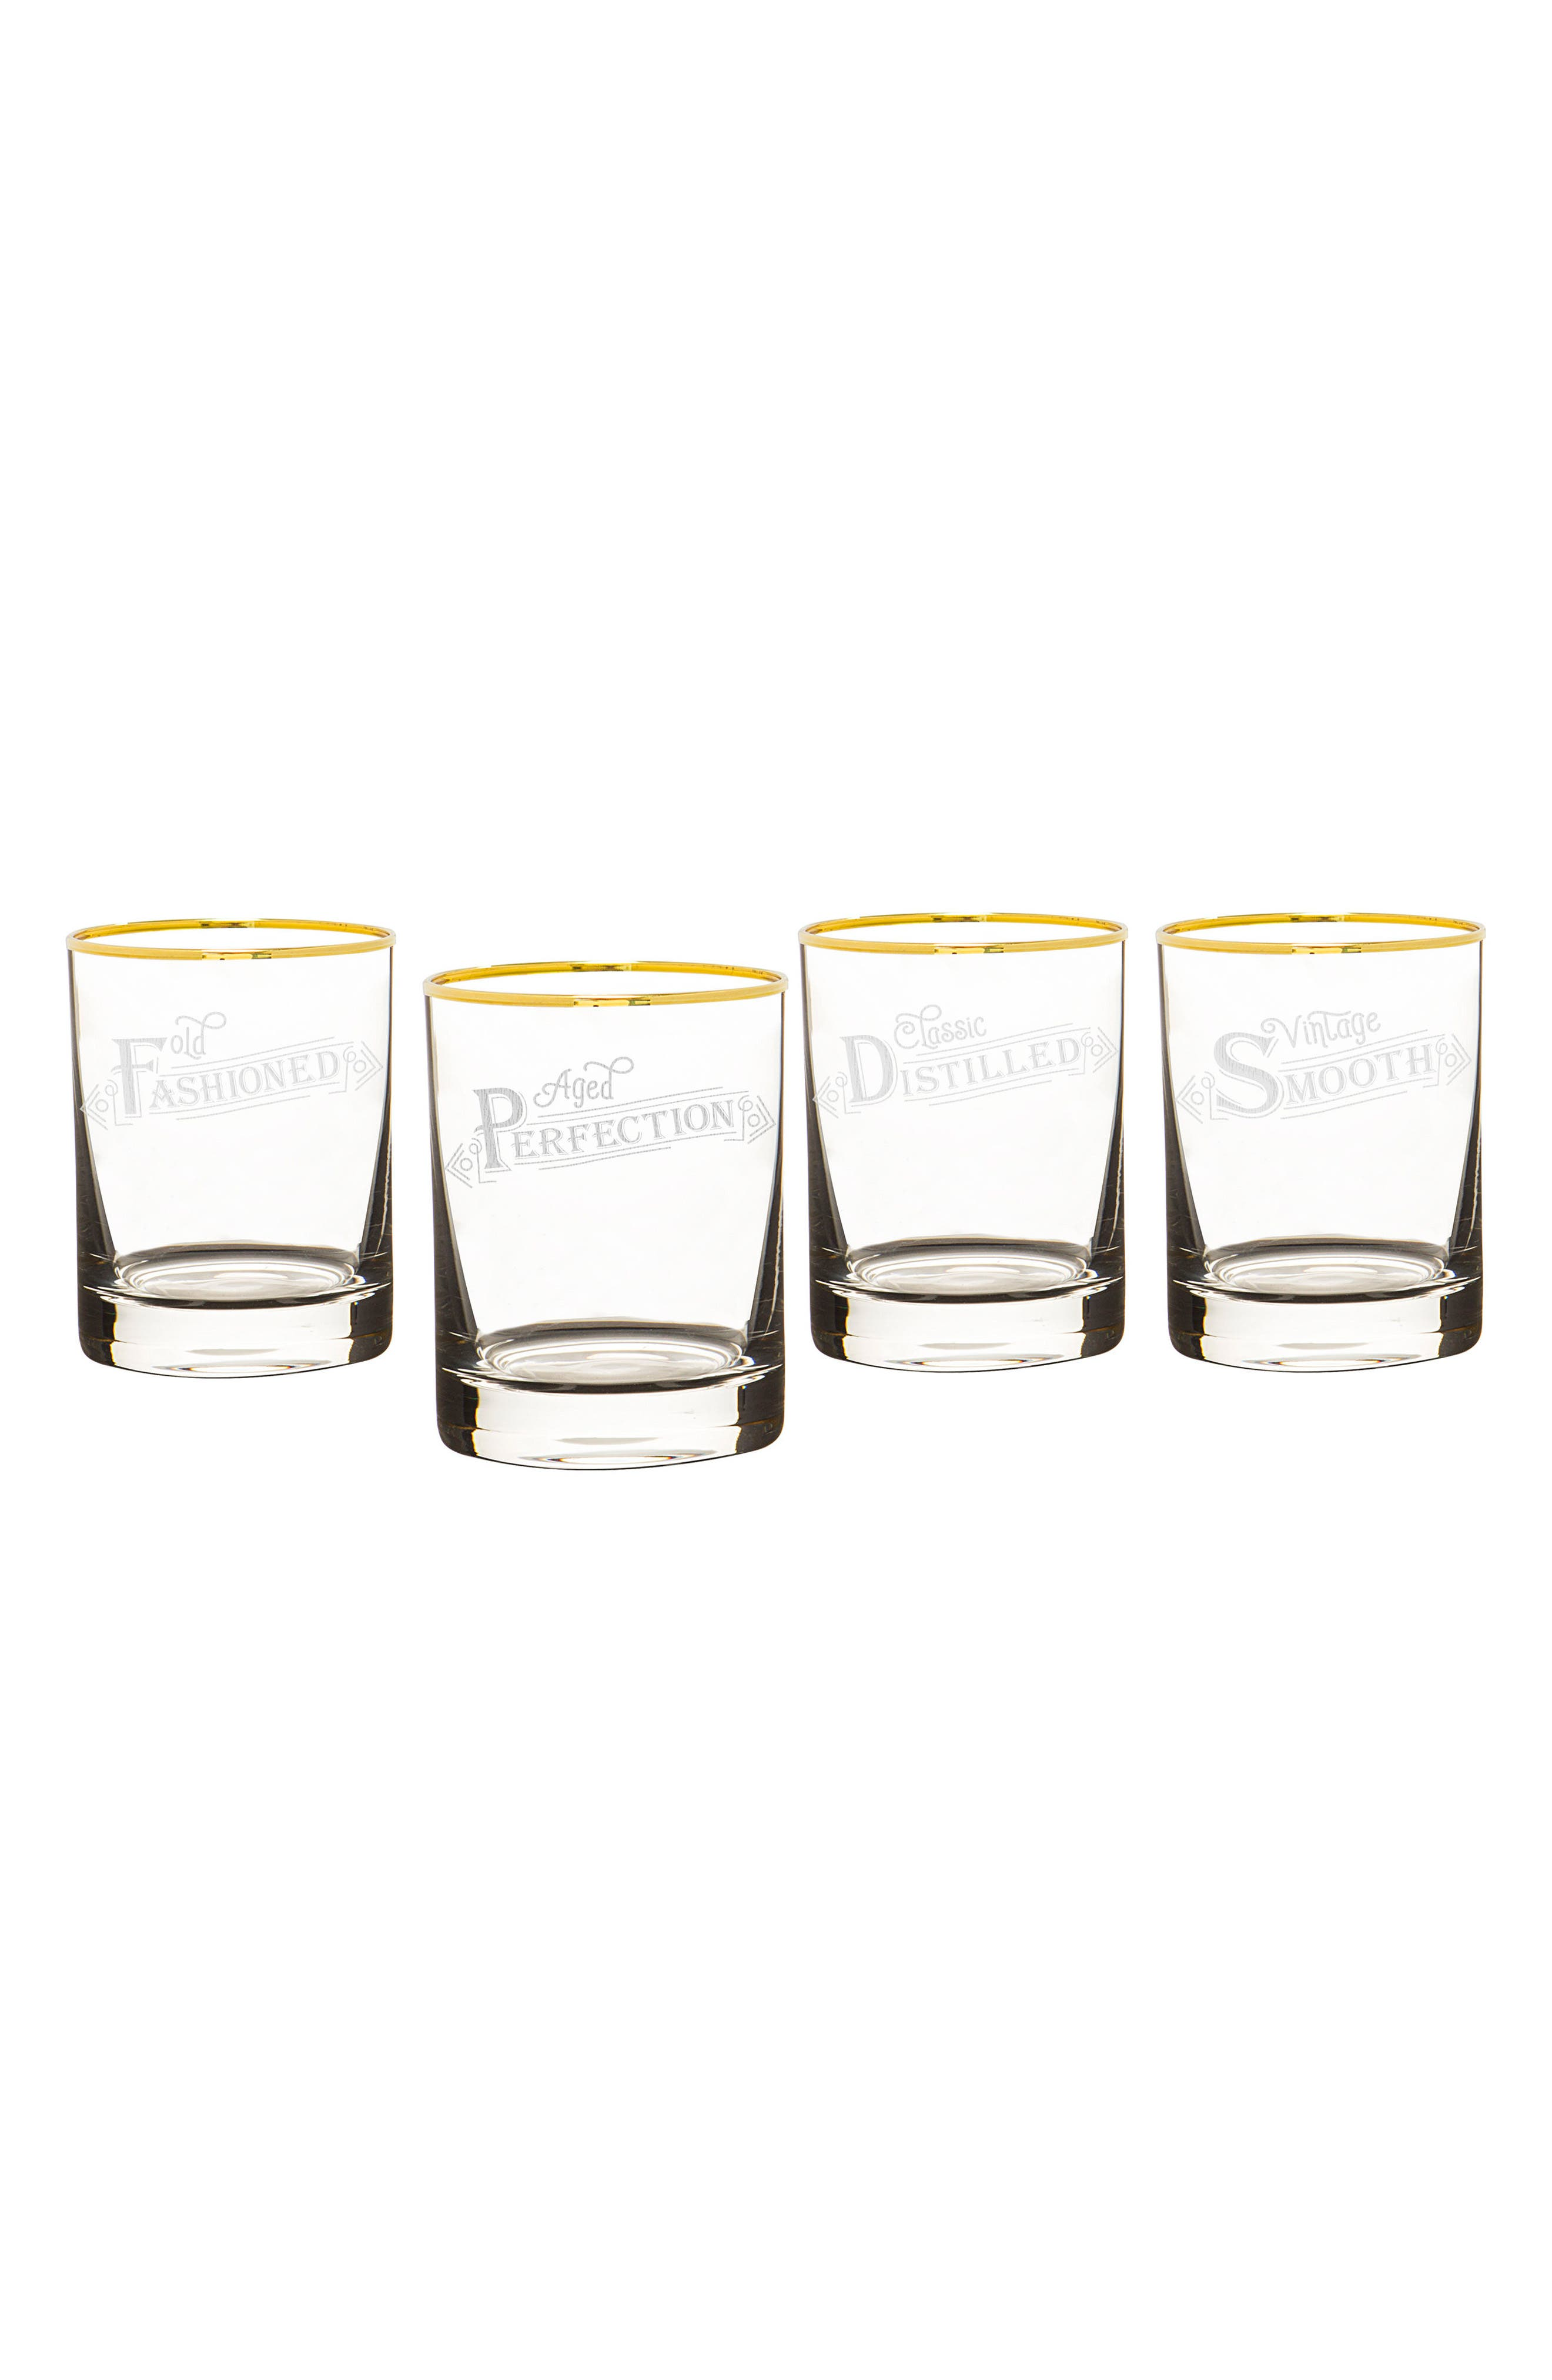 Set of 4 Gold Rim Old Fashioned Whiskey Glasses,                         Main,                         color, 110